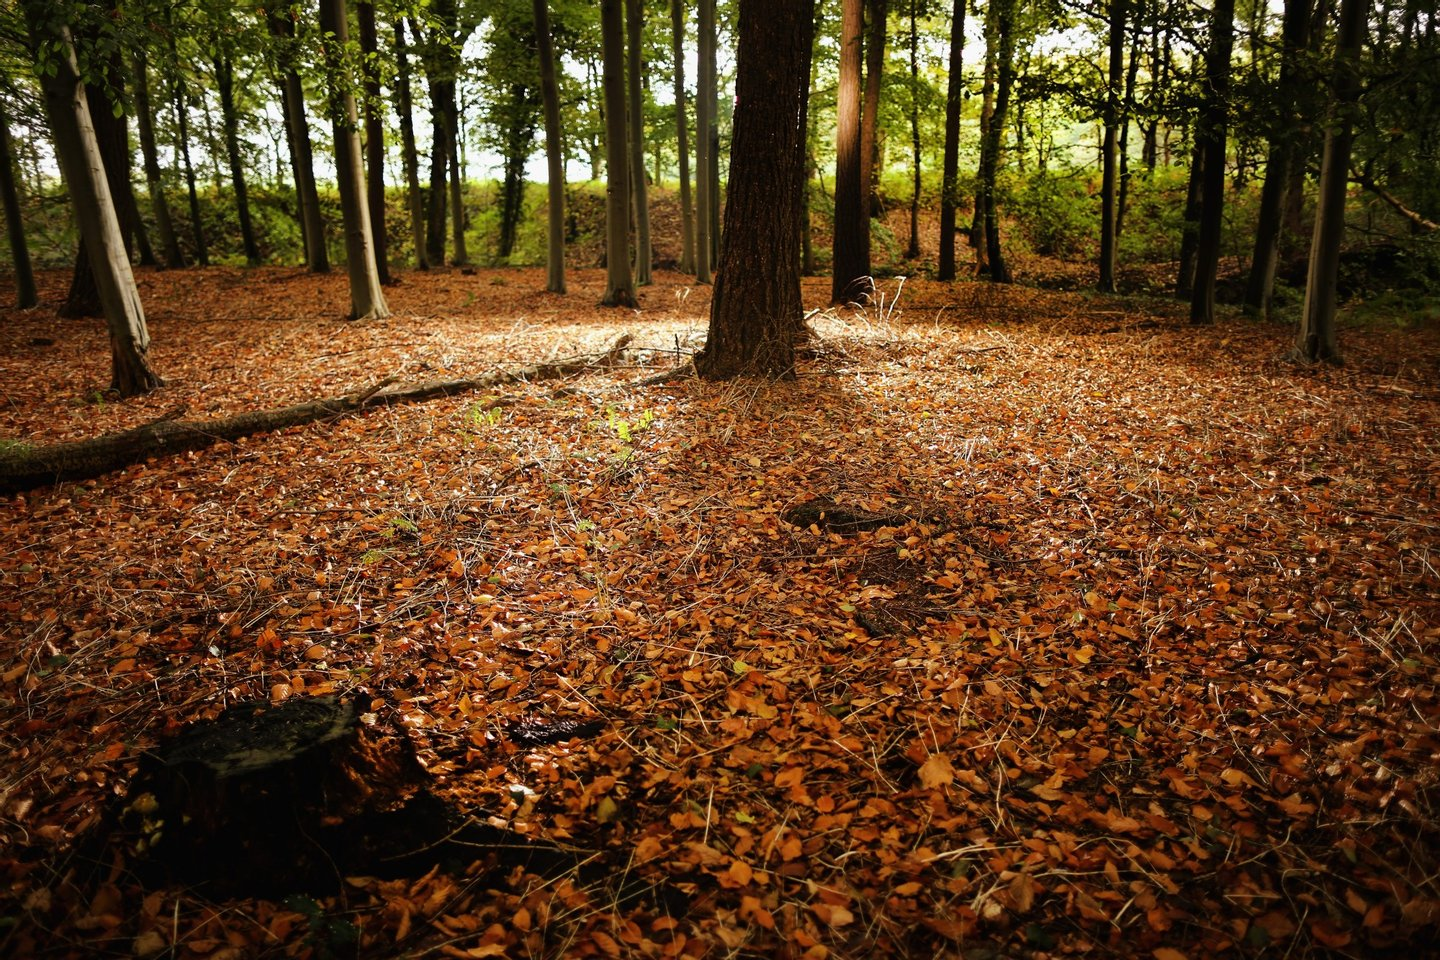 KNUTSFORD, UNITED KINGDOM - OCTOBER 21: Autumnal leaves carpet a woodland floor in the Cheshire countryside on October 21, 2013 in Knutsford, United Kingdom. The mild weather in the United Kingdom has delayed Autumn by up to two weeks according to statistics by The Woodland Trust. Members of the public have submitted their observations to the trust's Nature's Calendar which shows that the traditional Autumn tints are finally appearing on ash, elder, oak and horse chestnut. (Photo by Christopher Furlong/Getty Images)